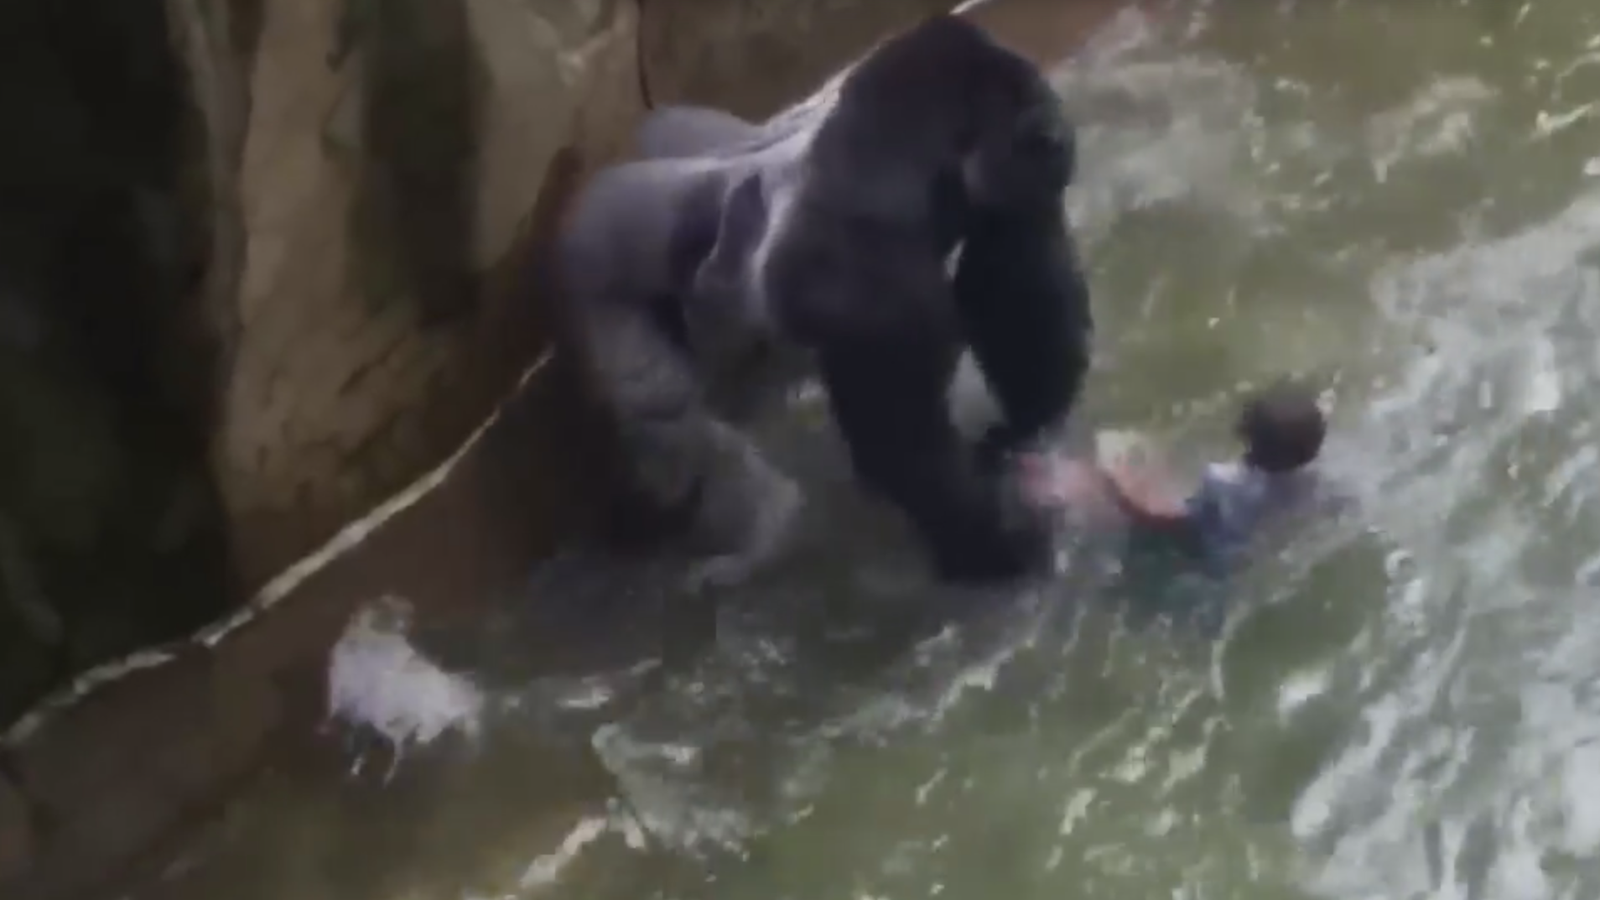 parents of 4 year old boy who fell into gorilla habitat are under